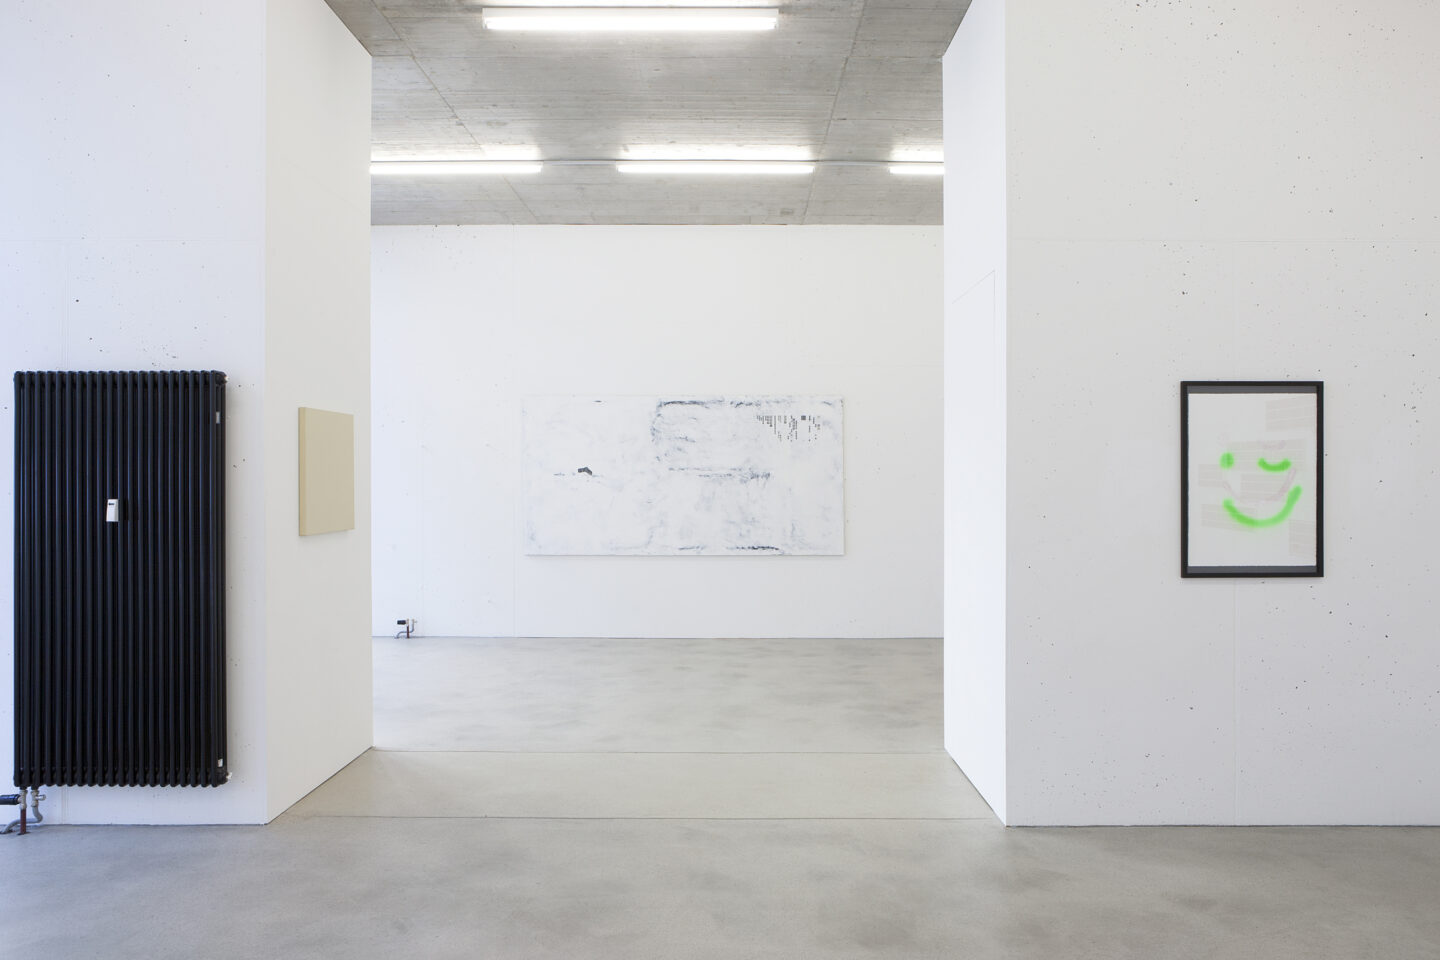 Exhibition View Groupshow «Style Samples» at Forma art contemporain, Lausanne / Photo: Shannon Guerrico / Courtesy: the artist and Forma